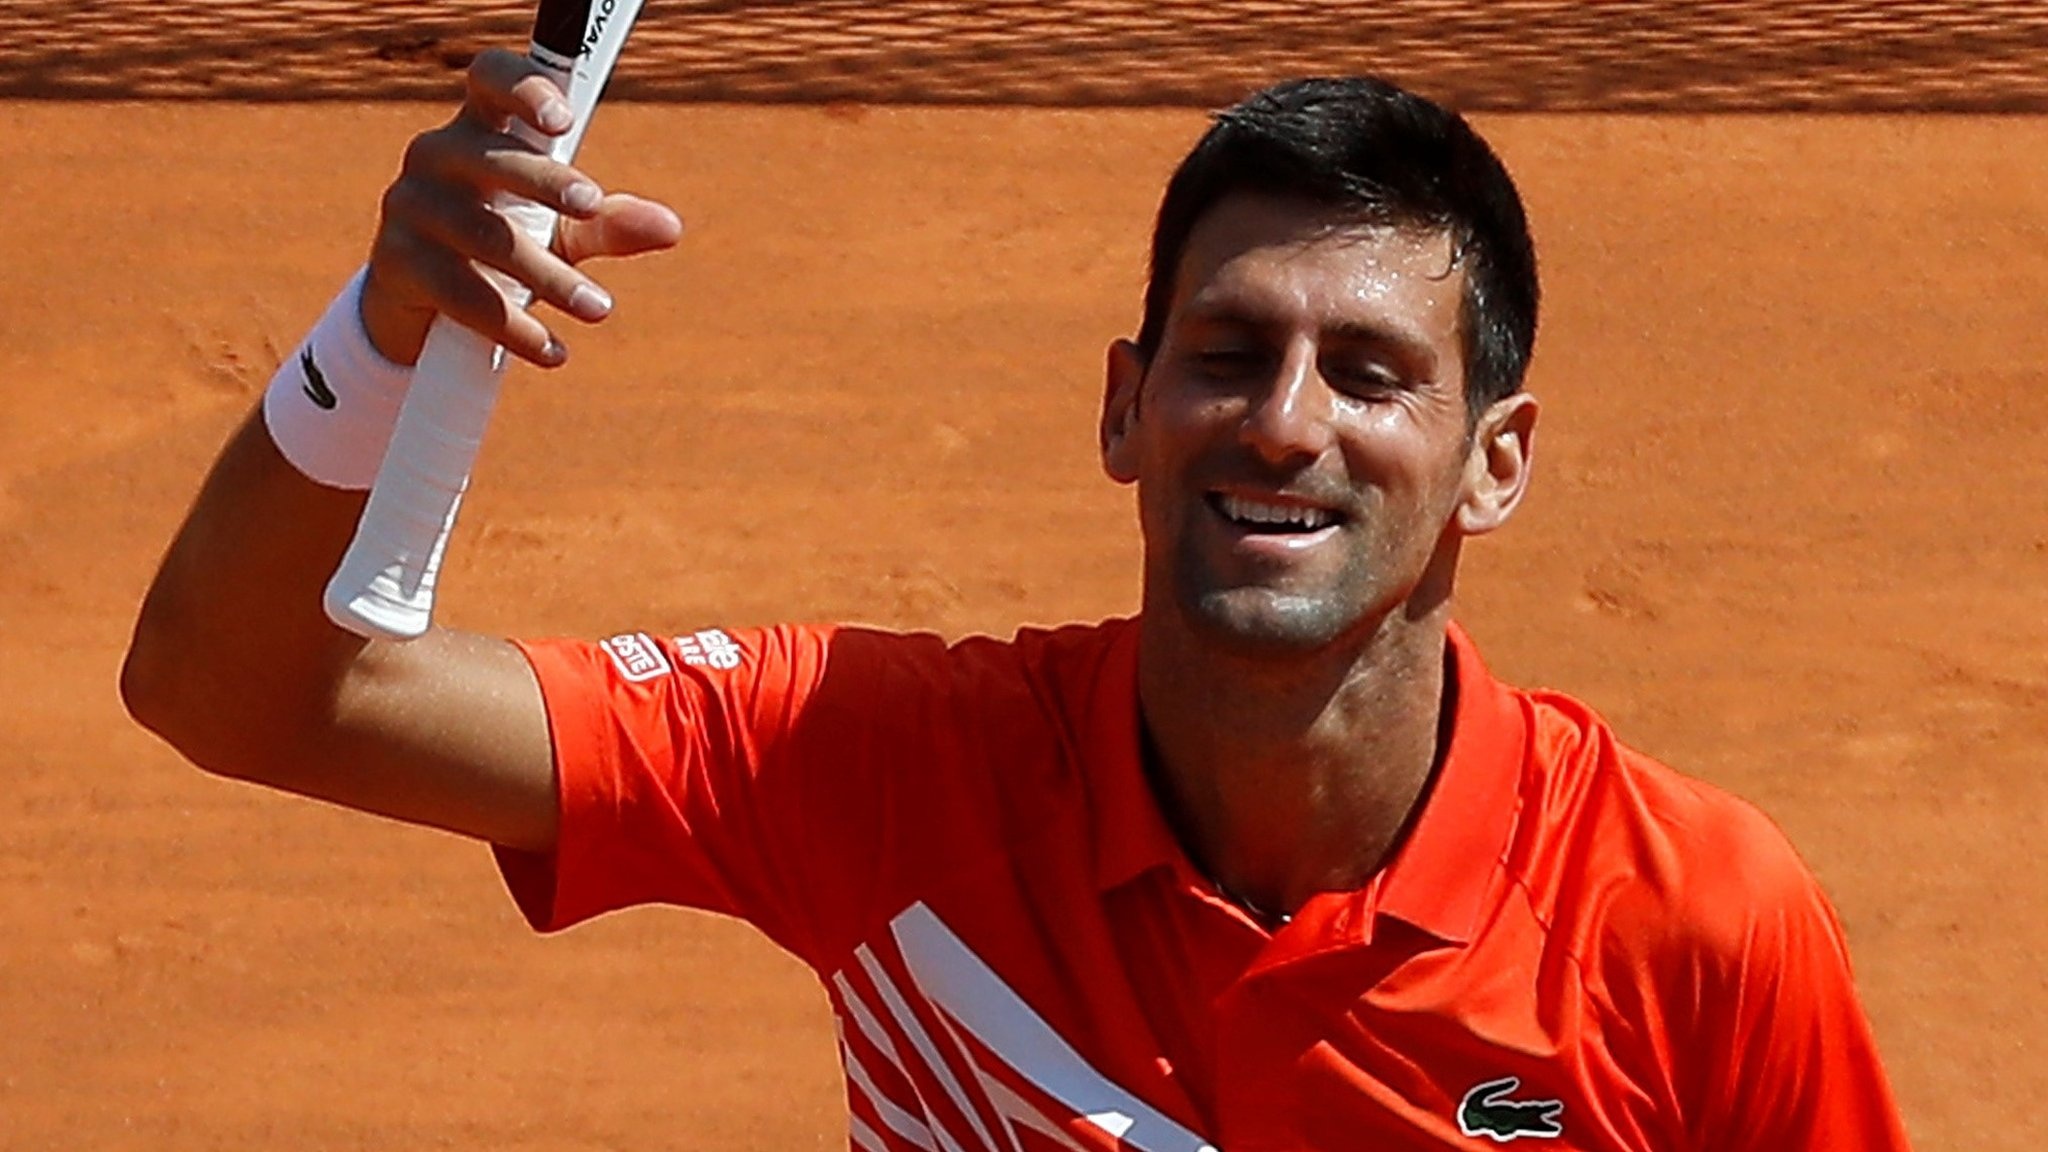 Monte Carlo Masters: Novak Djokovic & Rafael Nadal through